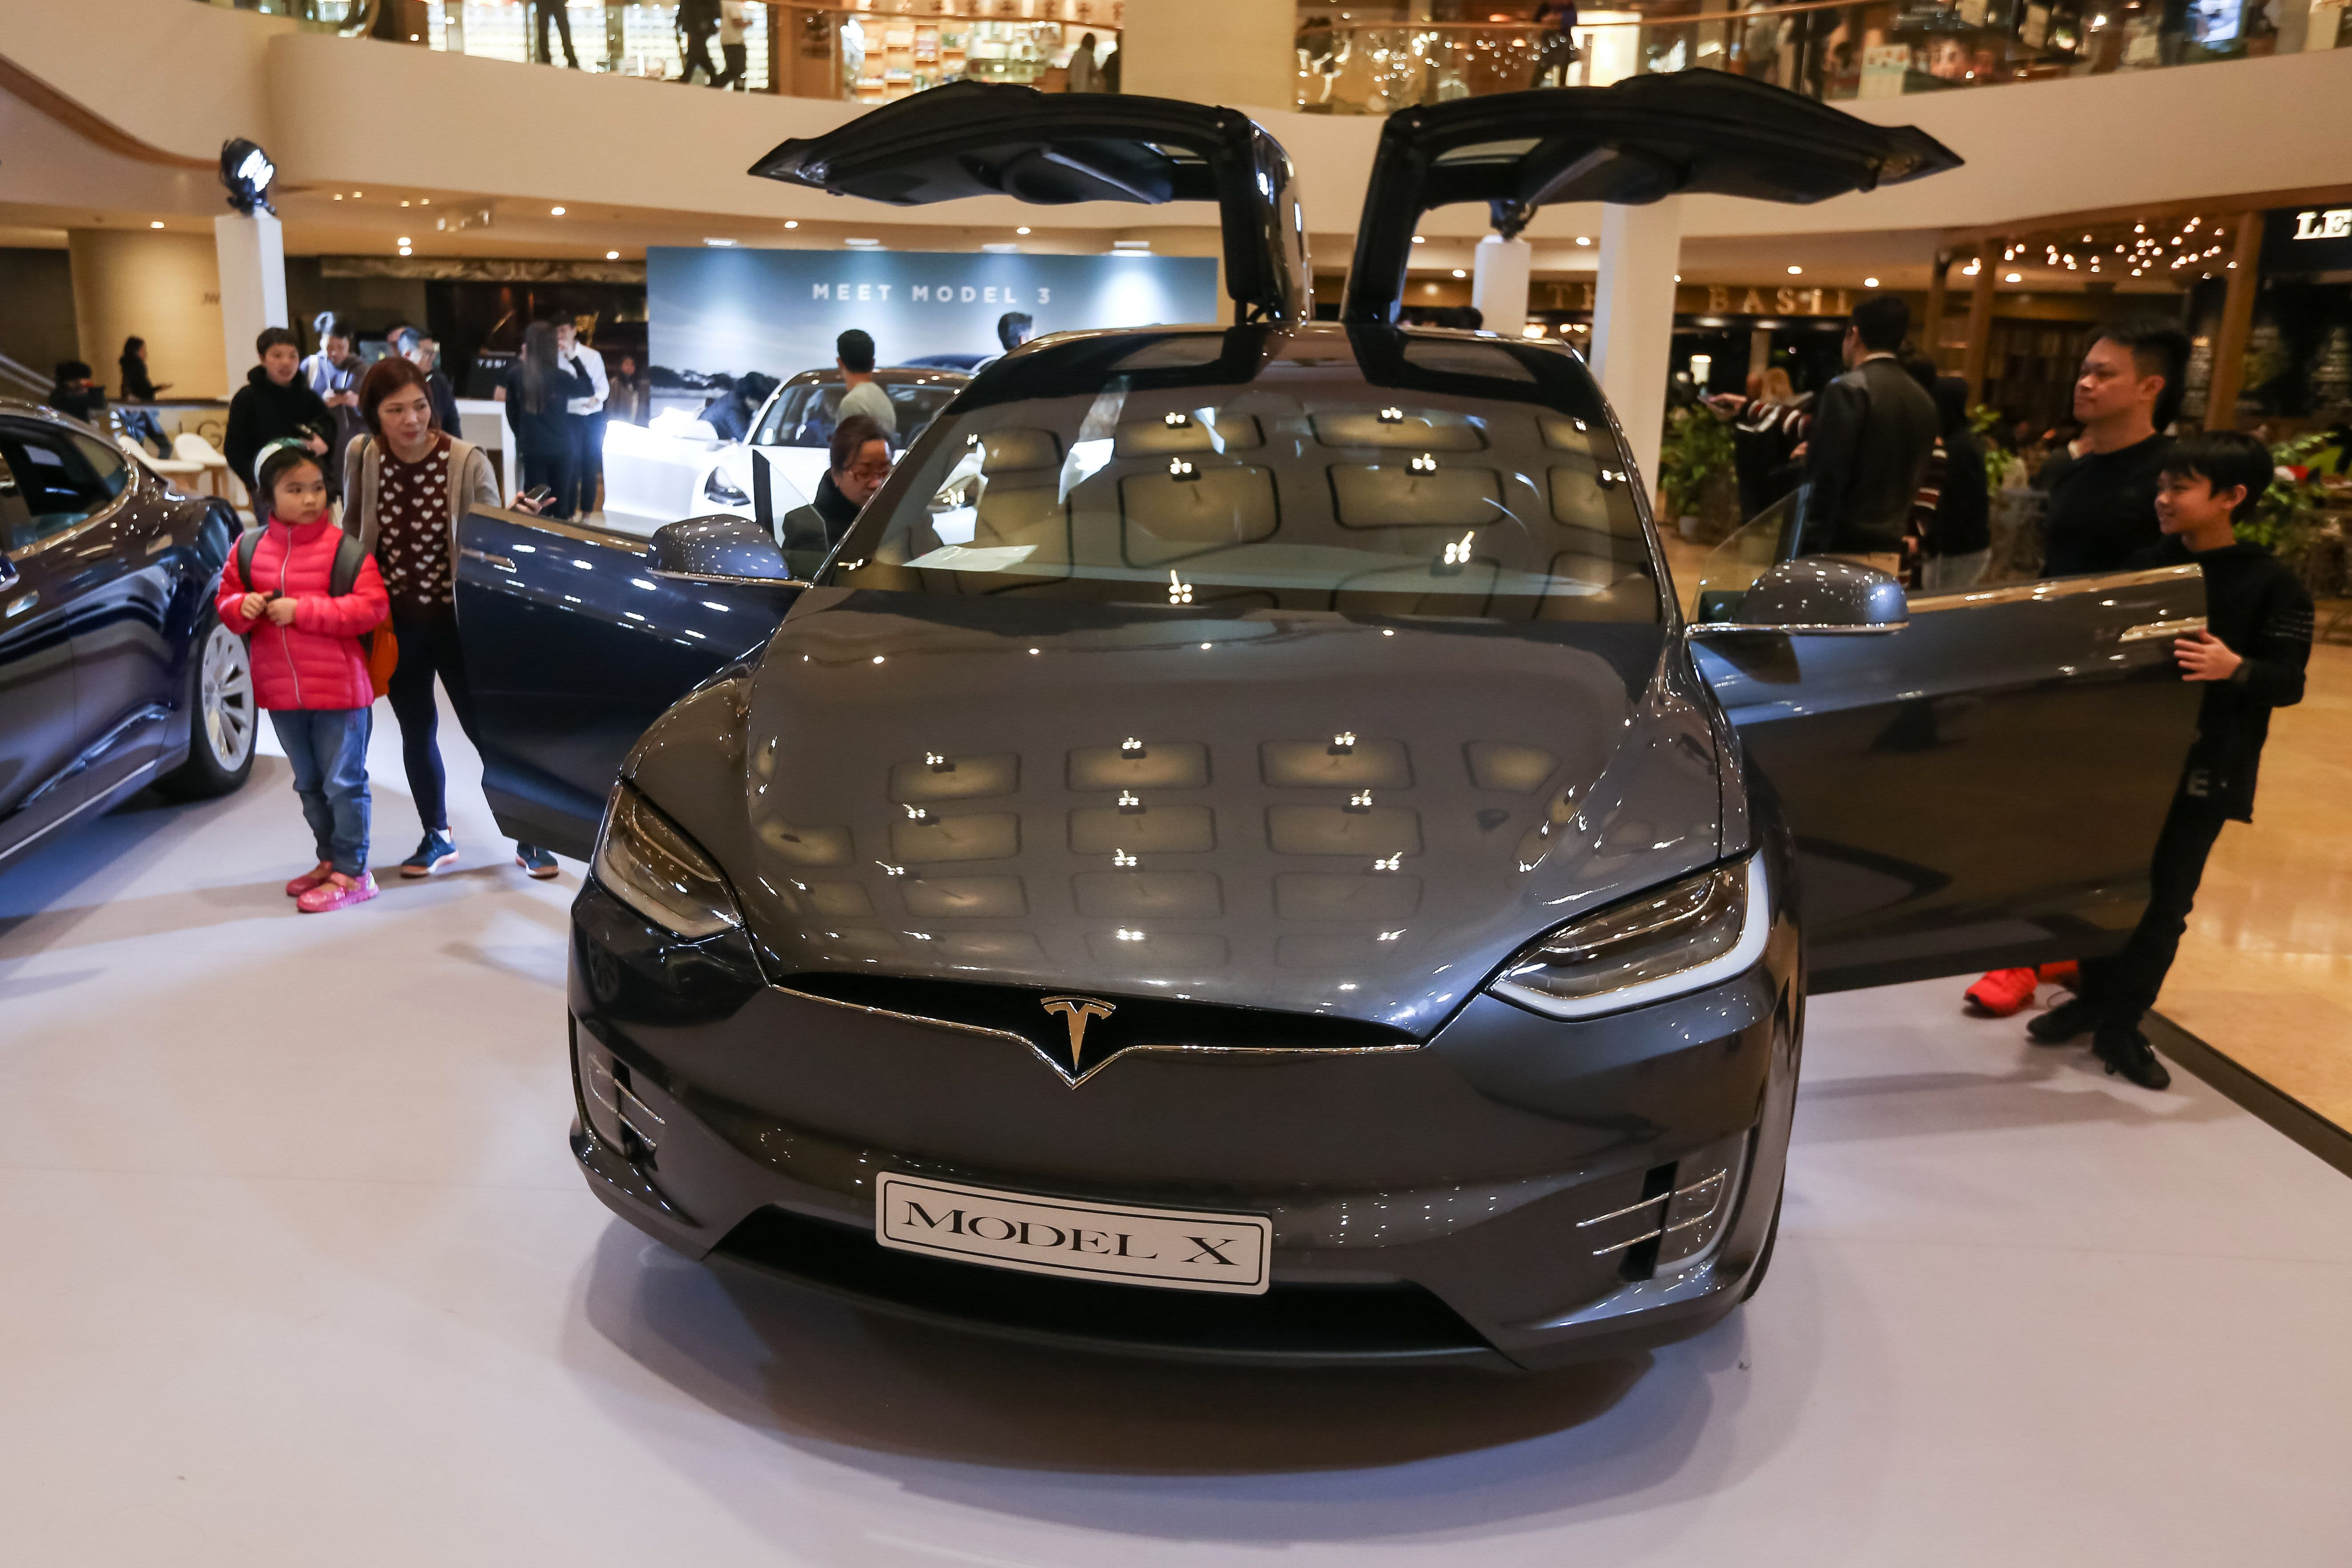 Morgan Stanley expects Tesla Model S and Model X sales to fall